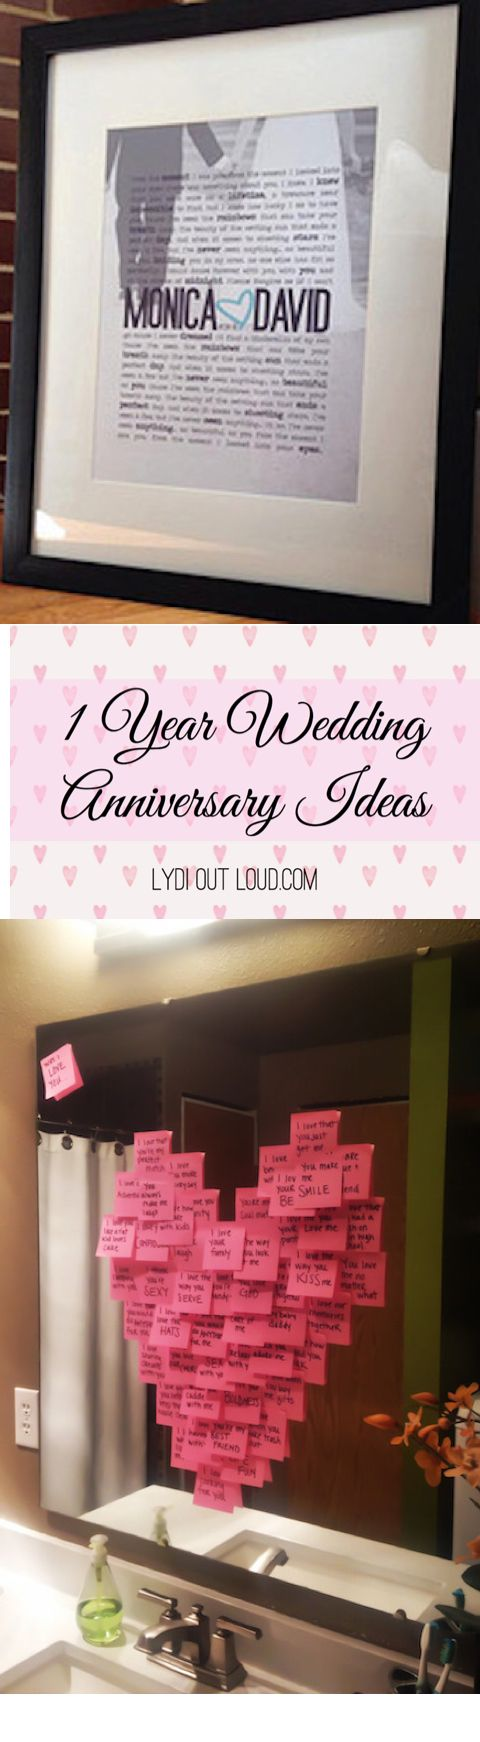 1 Year Anniversary Gift Ideas Lydi Out Loud Paper Gifts Anniversary 1 Year Anniversary Gifts First Wedding Anniversary Gift